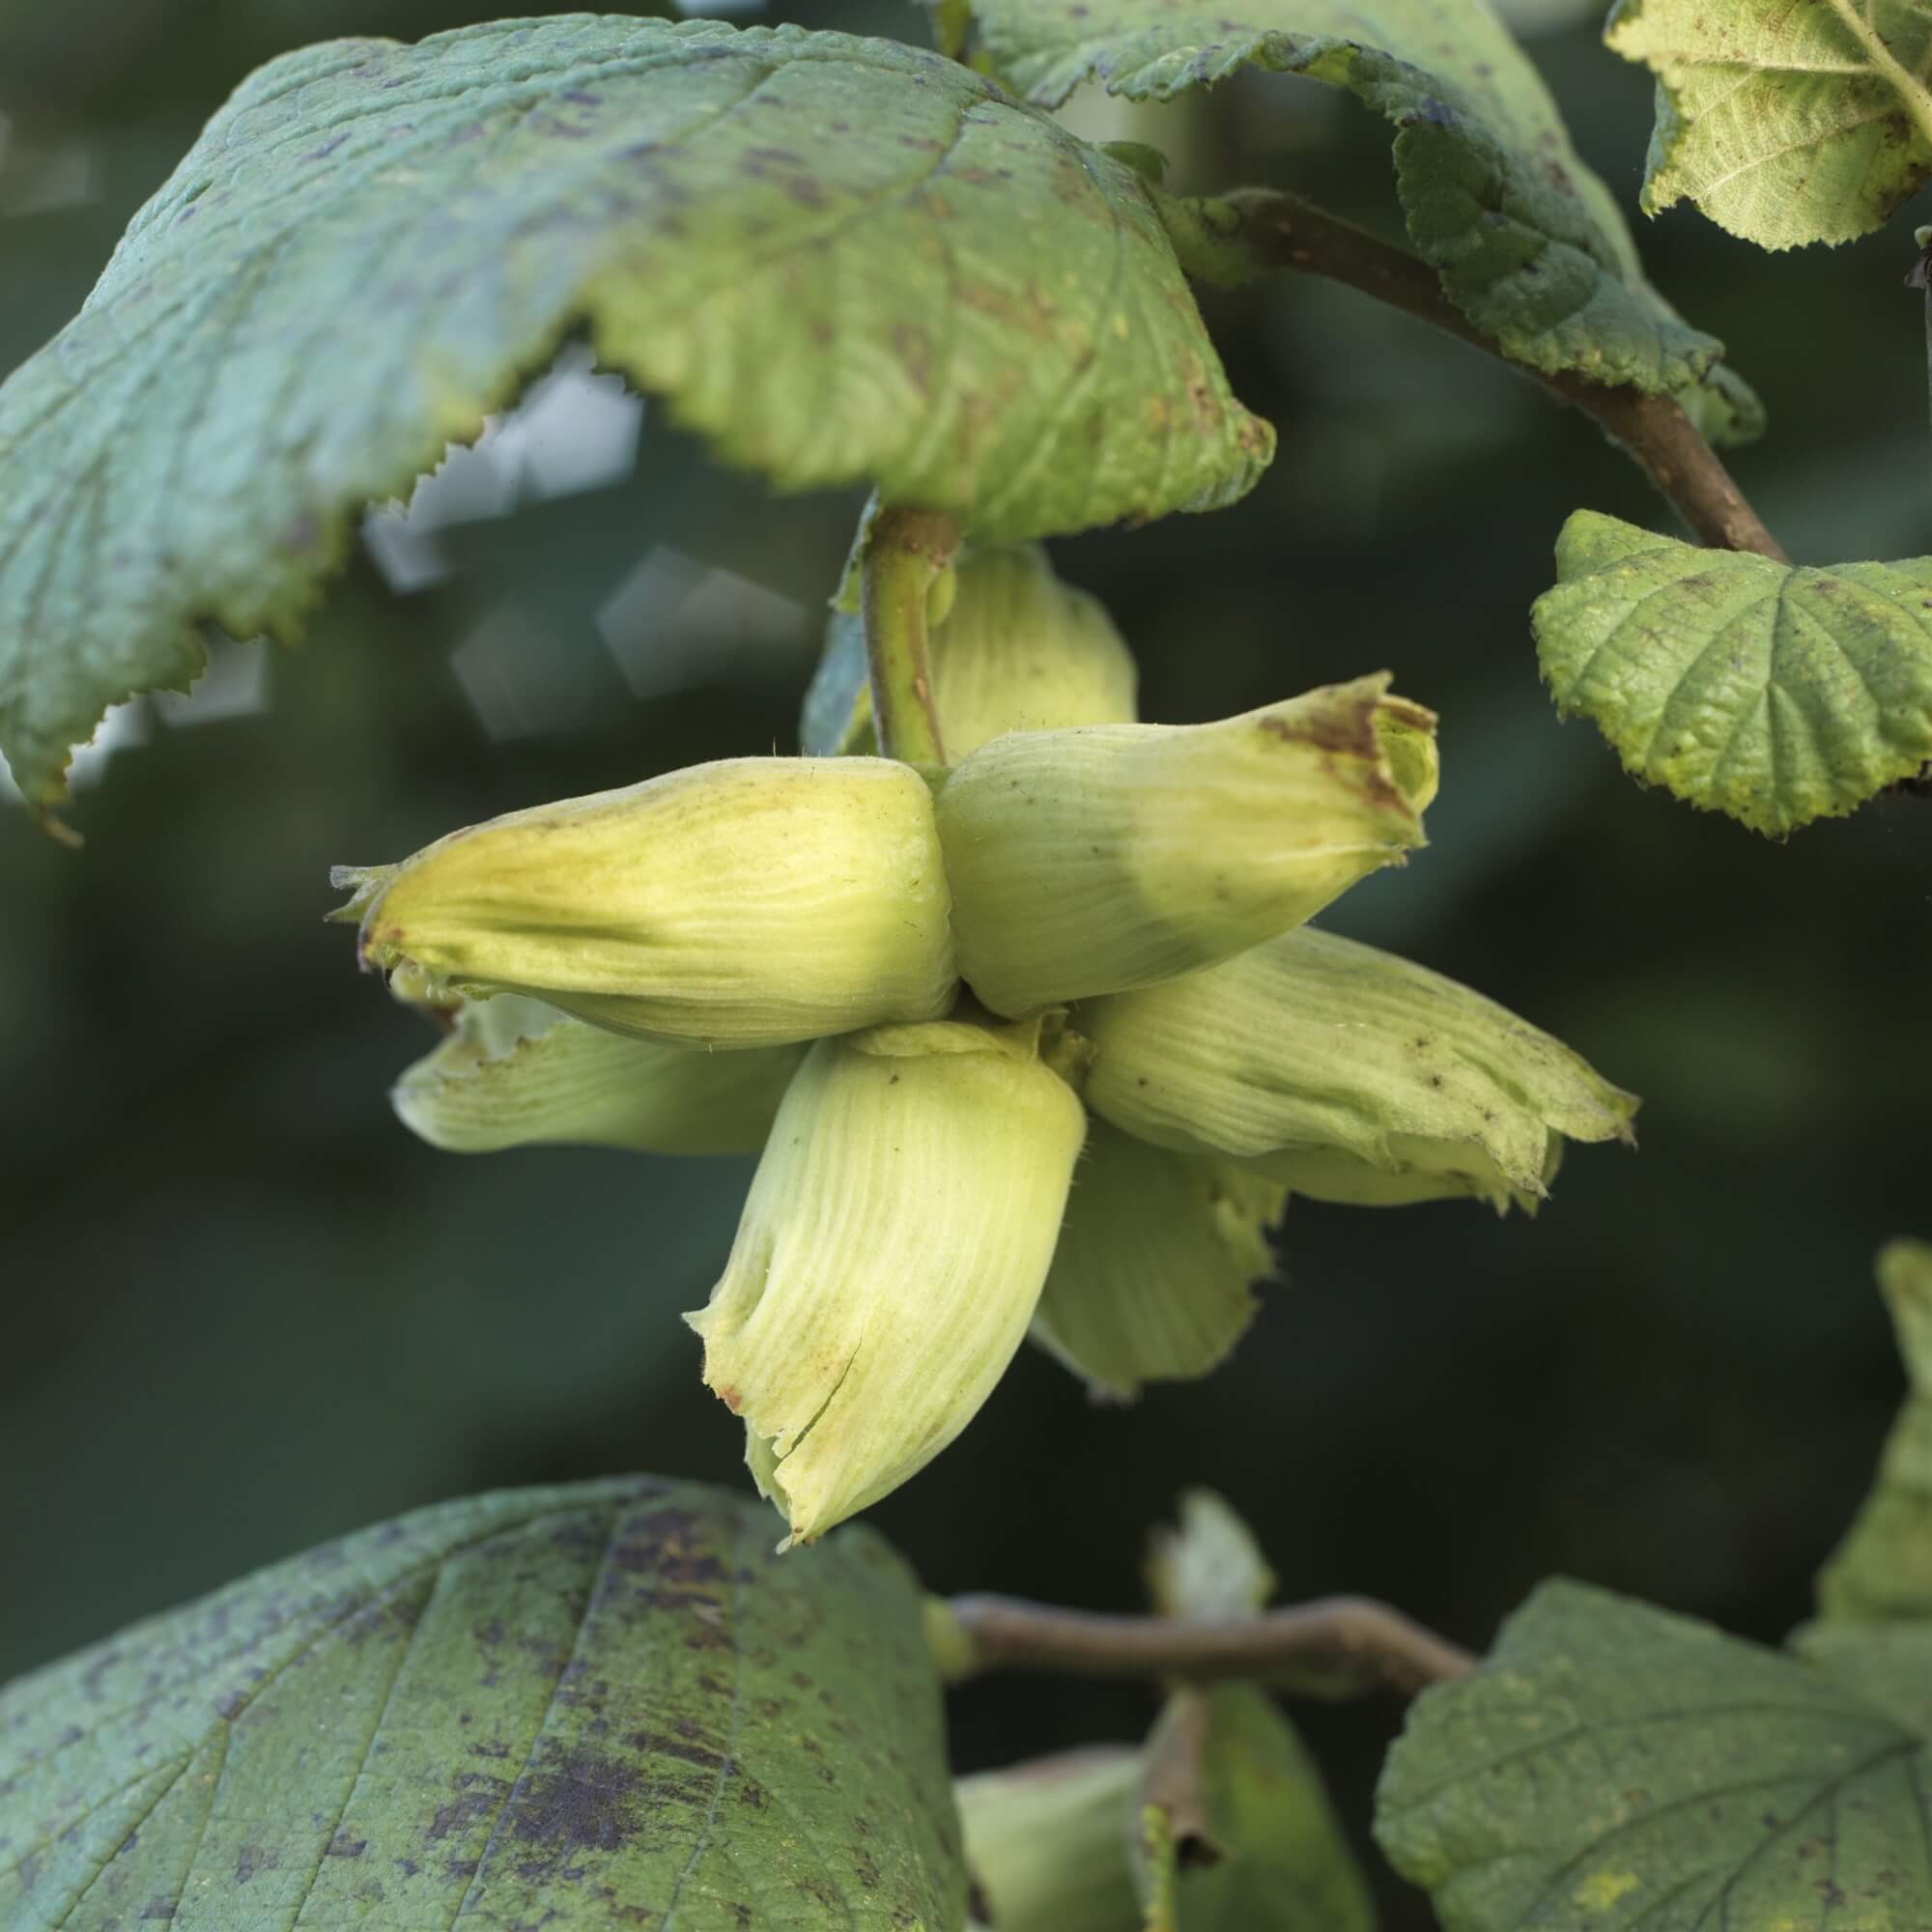 - Green/Golden Kentish Cobnuts